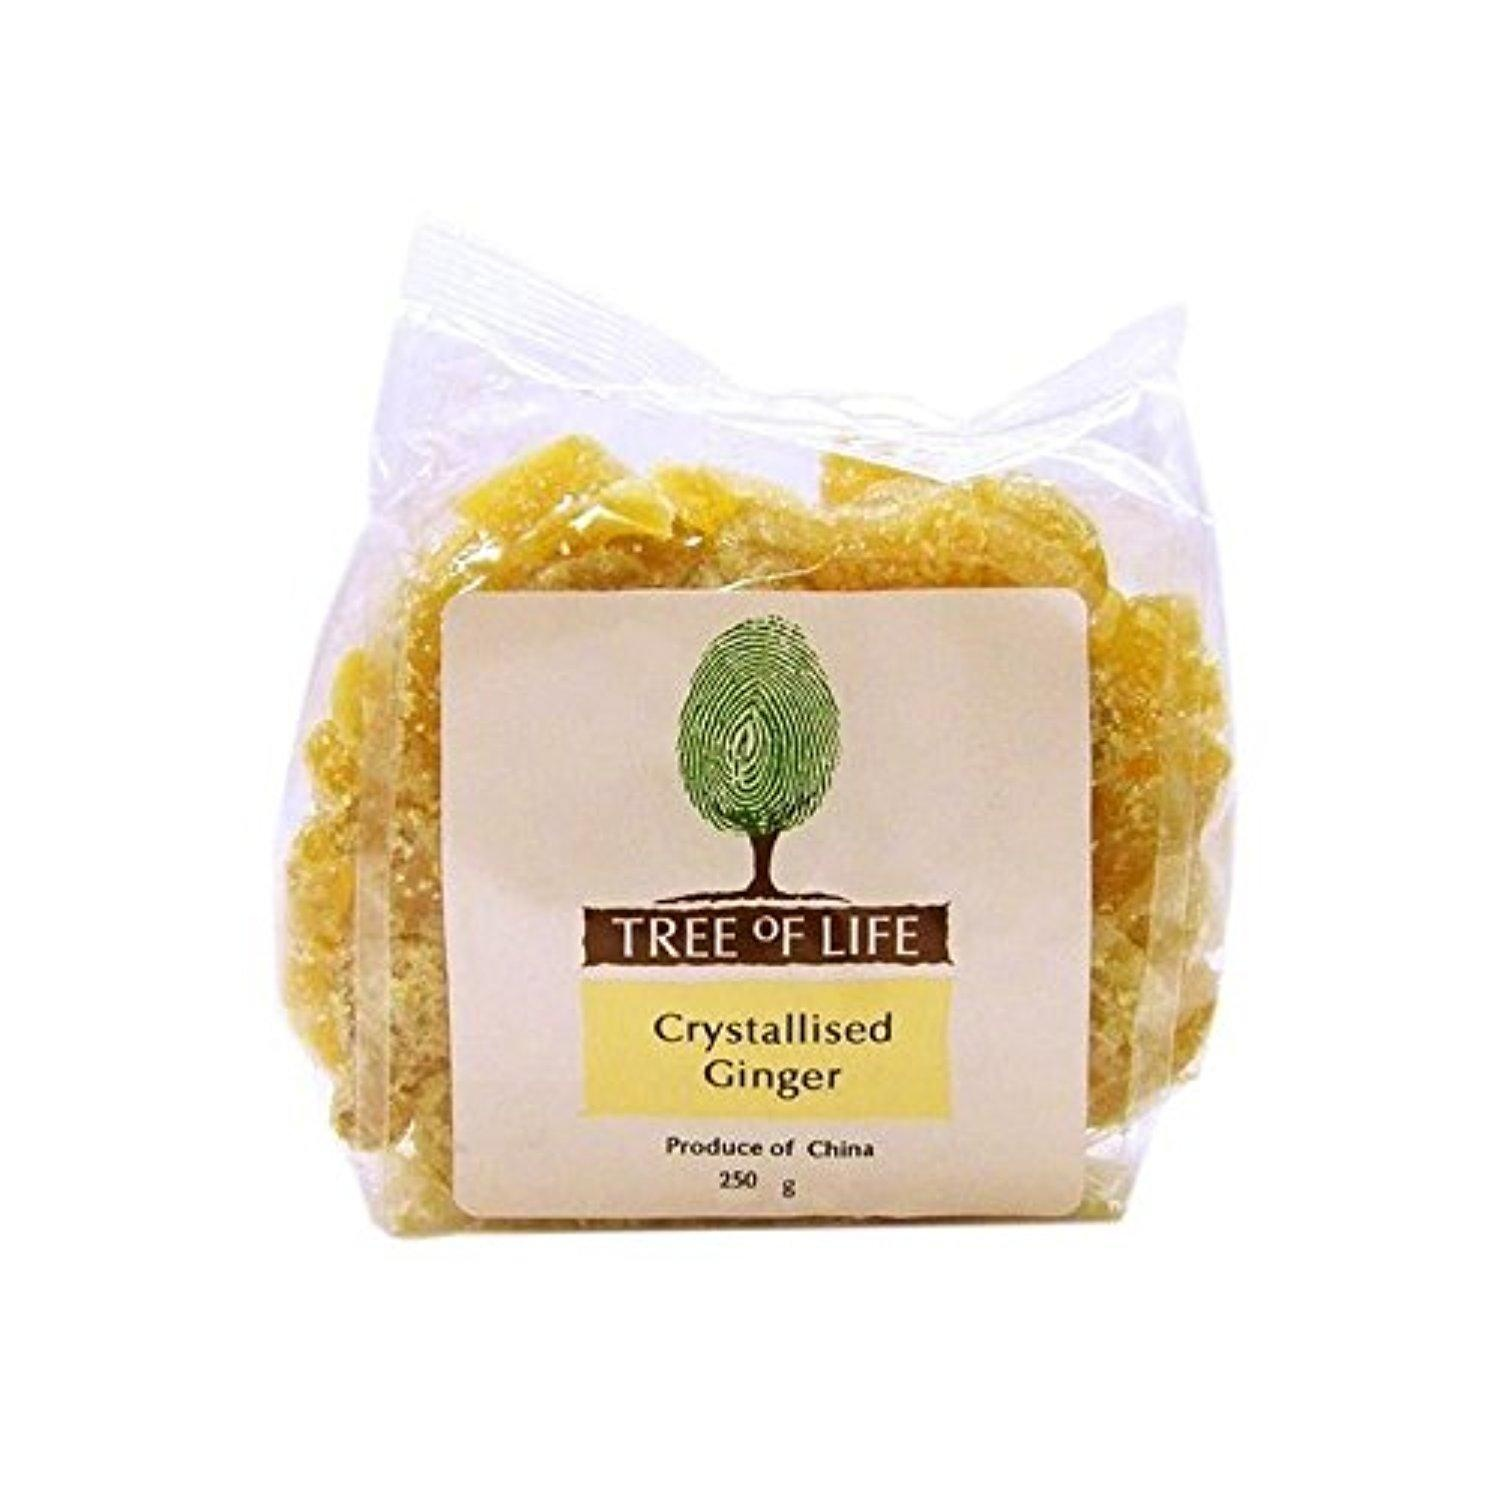 Tree of Life Crystallised Ginger 250g - Pack of 2